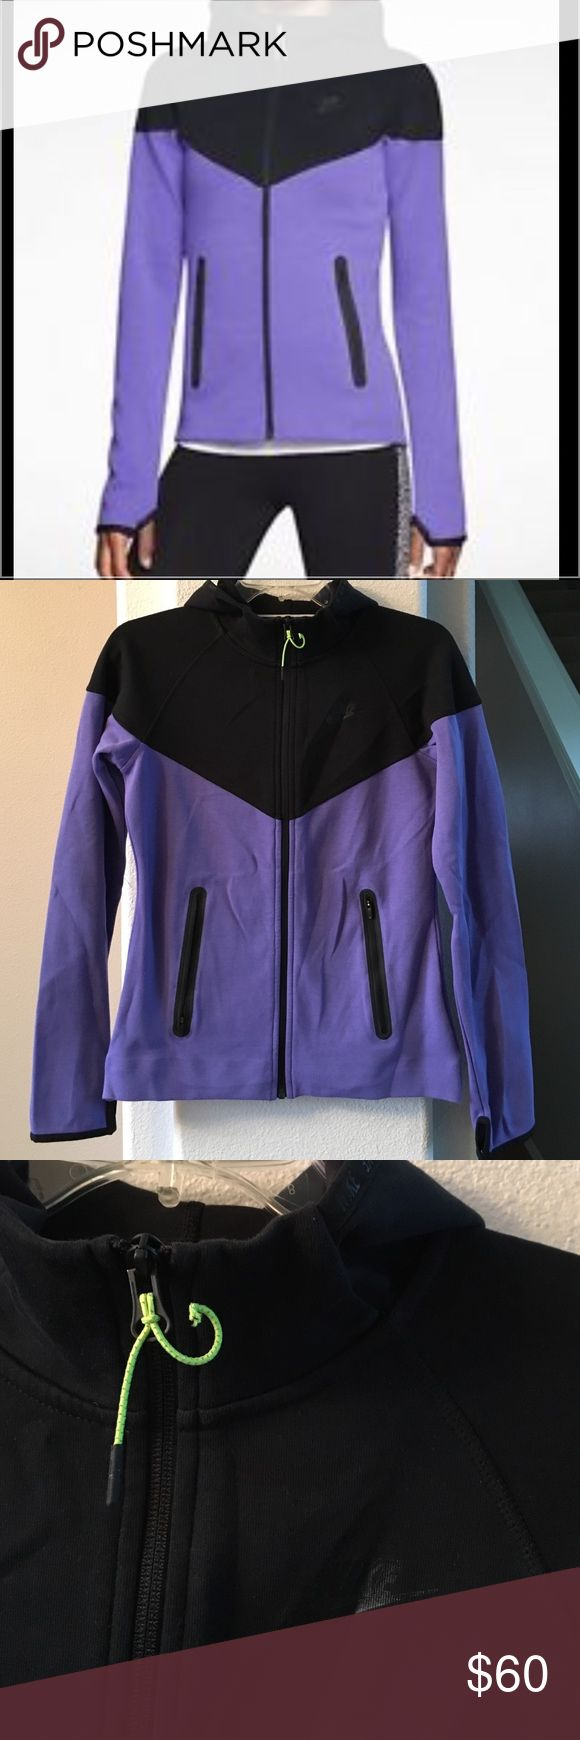 """New Listing! Nike Windrunner Tech Fleece Jacket Purple and black Nike Windrunner Tech Fleece Jacket. A cozy cotton blend and a contrast panel with chevron seams allow for warmth without the bulk and a timeless look. Multi-panel hood zips up to chin Raglan sleeves. Side pockets with bonded zippers. Elastic cuffs with thumbholes for coverage that stays in place and hand warmth Fabric: 69% cotton/31% polyester. Size small-16"""" across chest and 23"""" long. Missing one of the ends on the zipper…"""